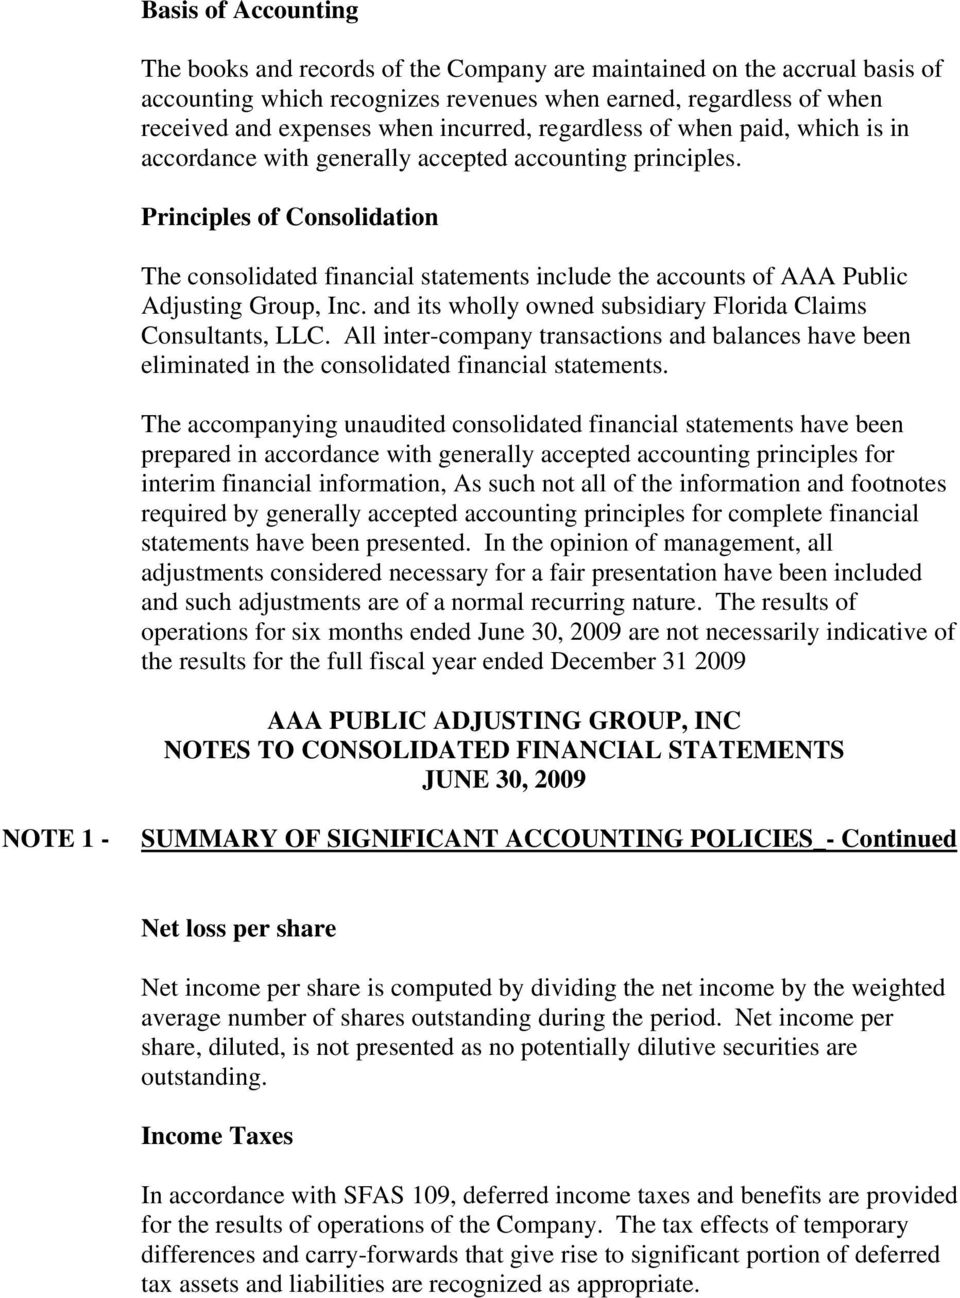 Principles of Consolidation The consolidated financial statements include the accounts of AAA Public Adjusting Group, Inc. and its wholly owned subsidiary Florida Claims Consultants, LLC.